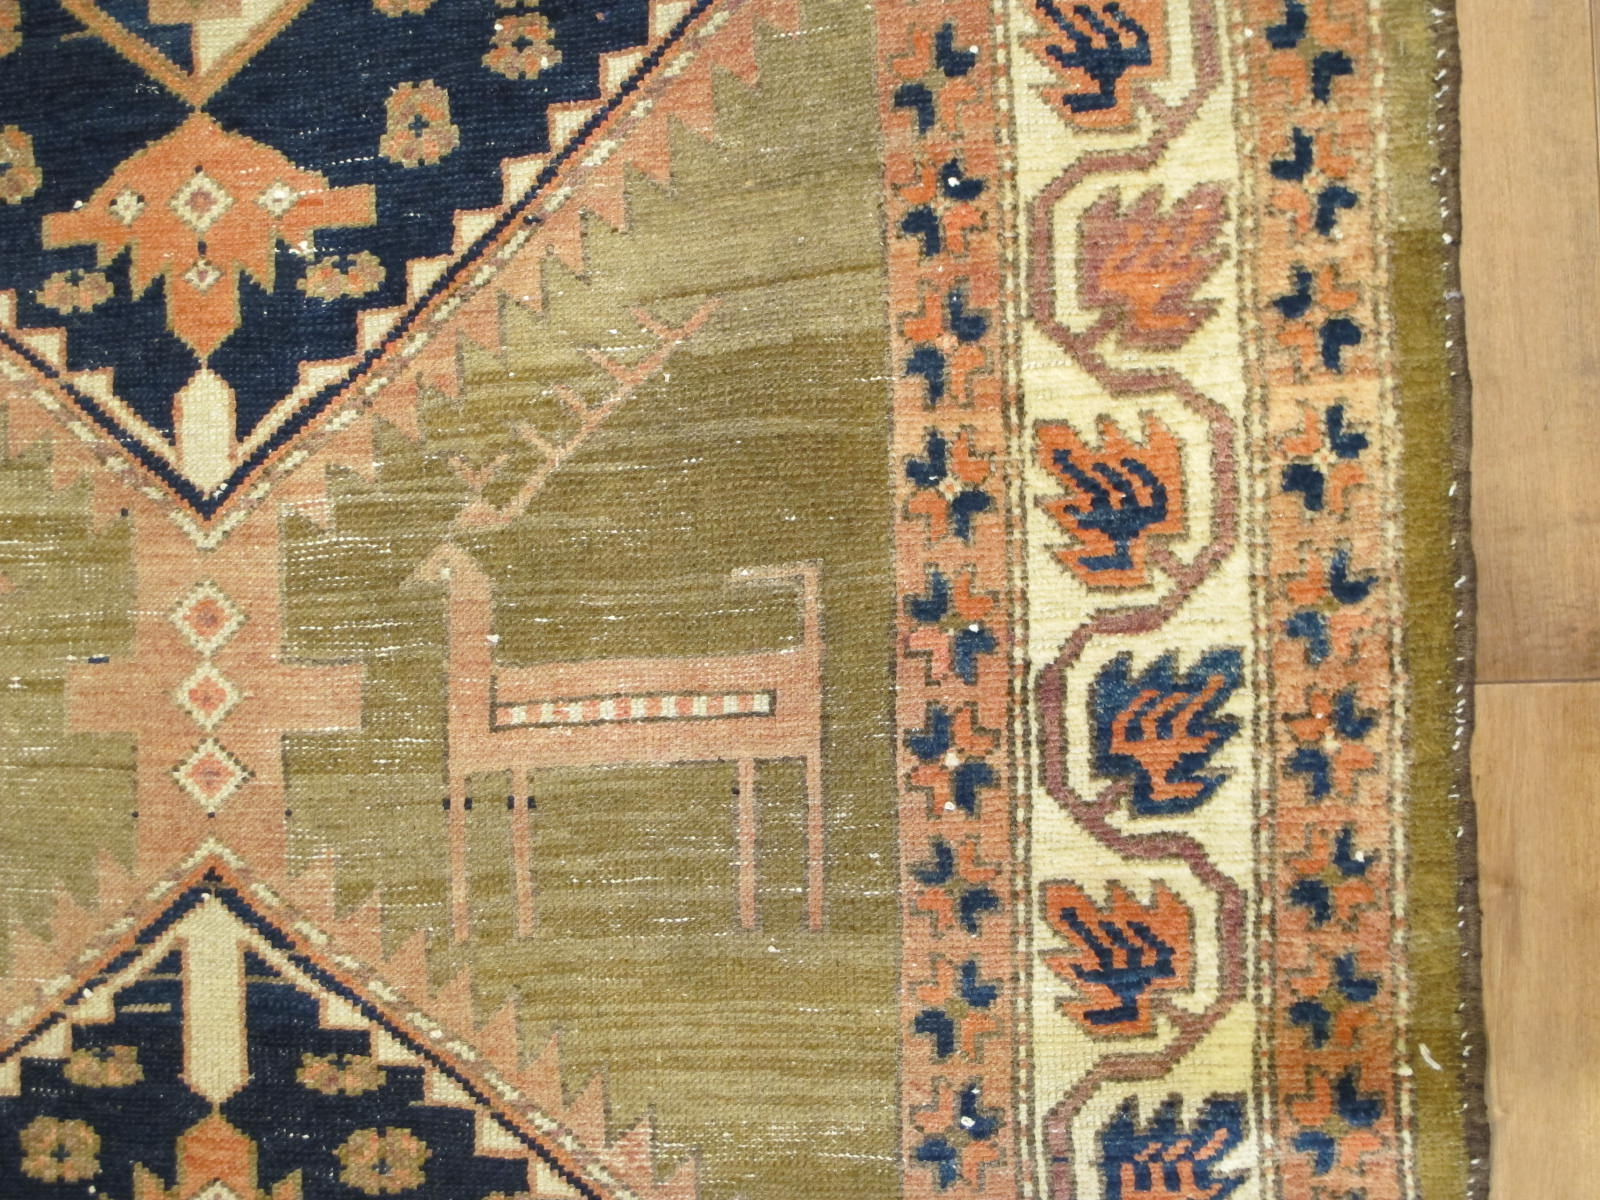 23099 antique persian kurdish rug 4,6 x 14 (3)